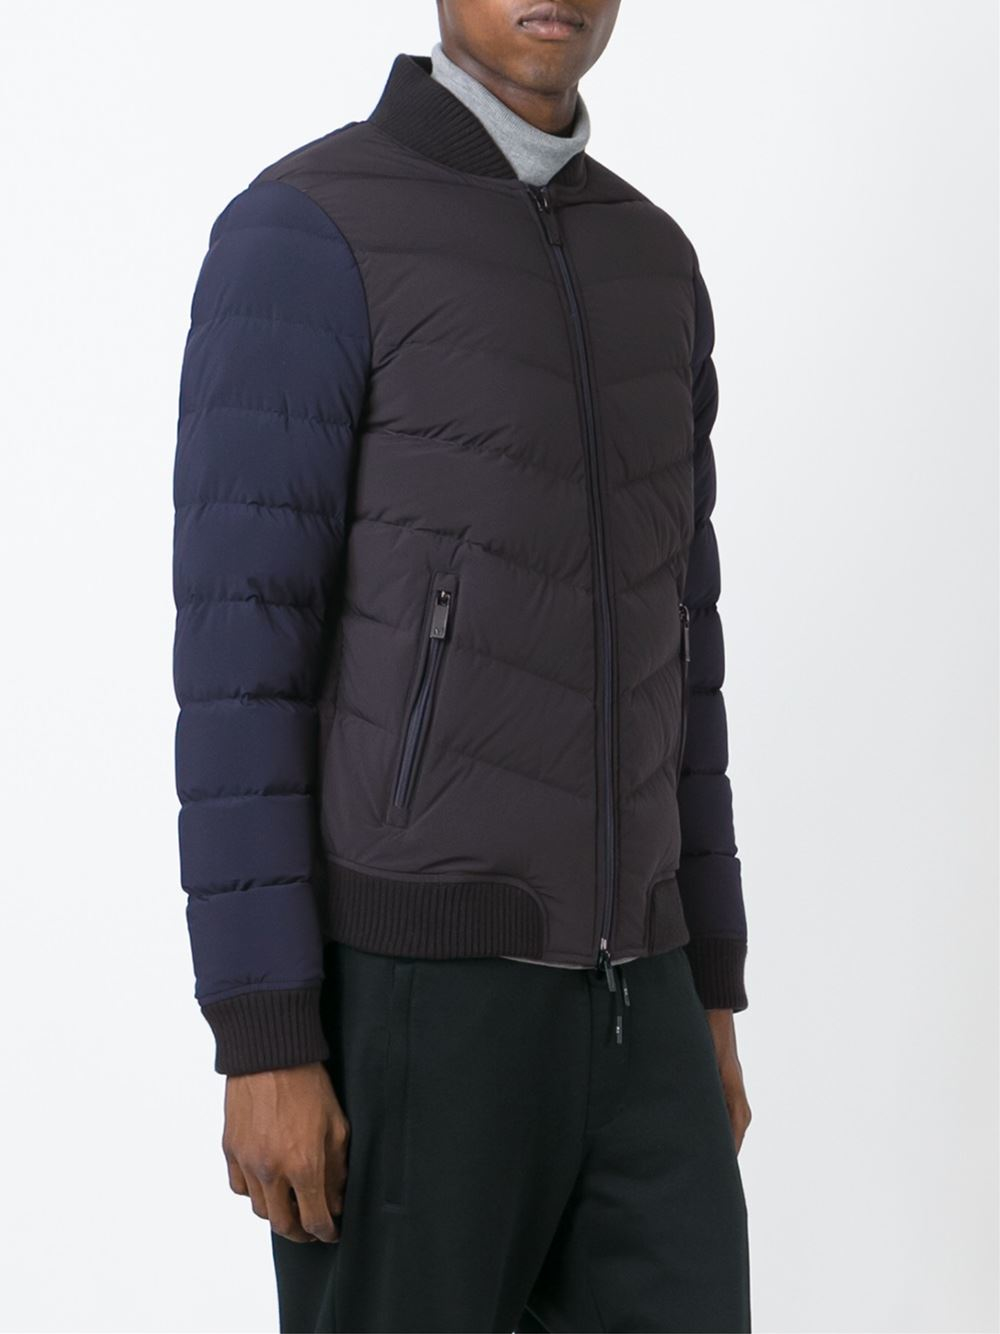 Armani jeans Padded Bomber Jacket in Blue for Men   Lyst : armani jeans quilted jacket - Adamdwight.com